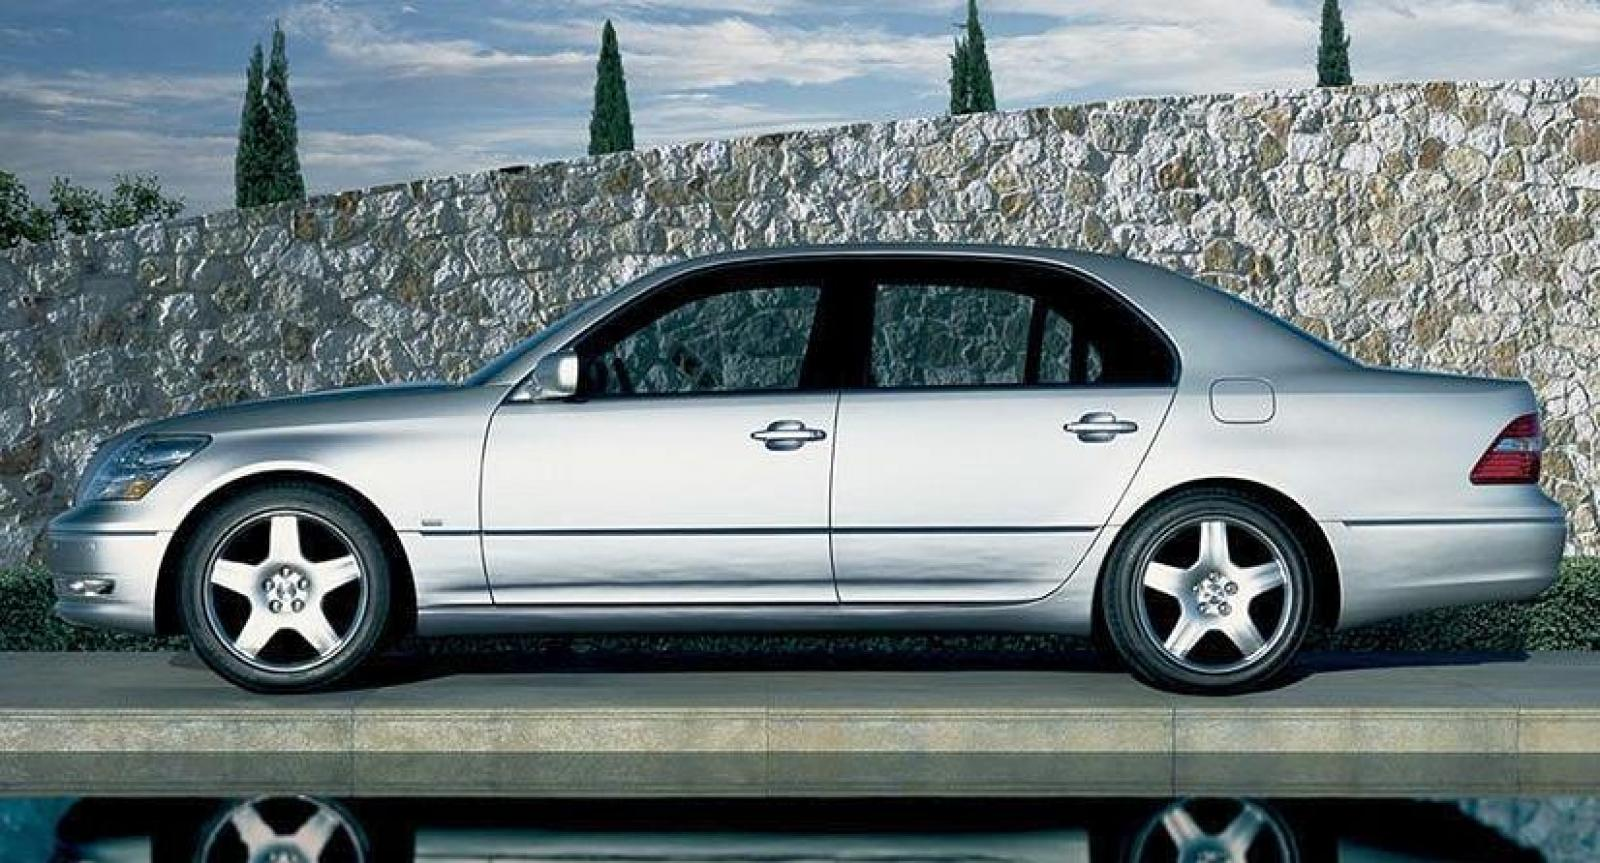 2003 lexus ls 430 information and photos zombiedrive. Black Bedroom Furniture Sets. Home Design Ideas